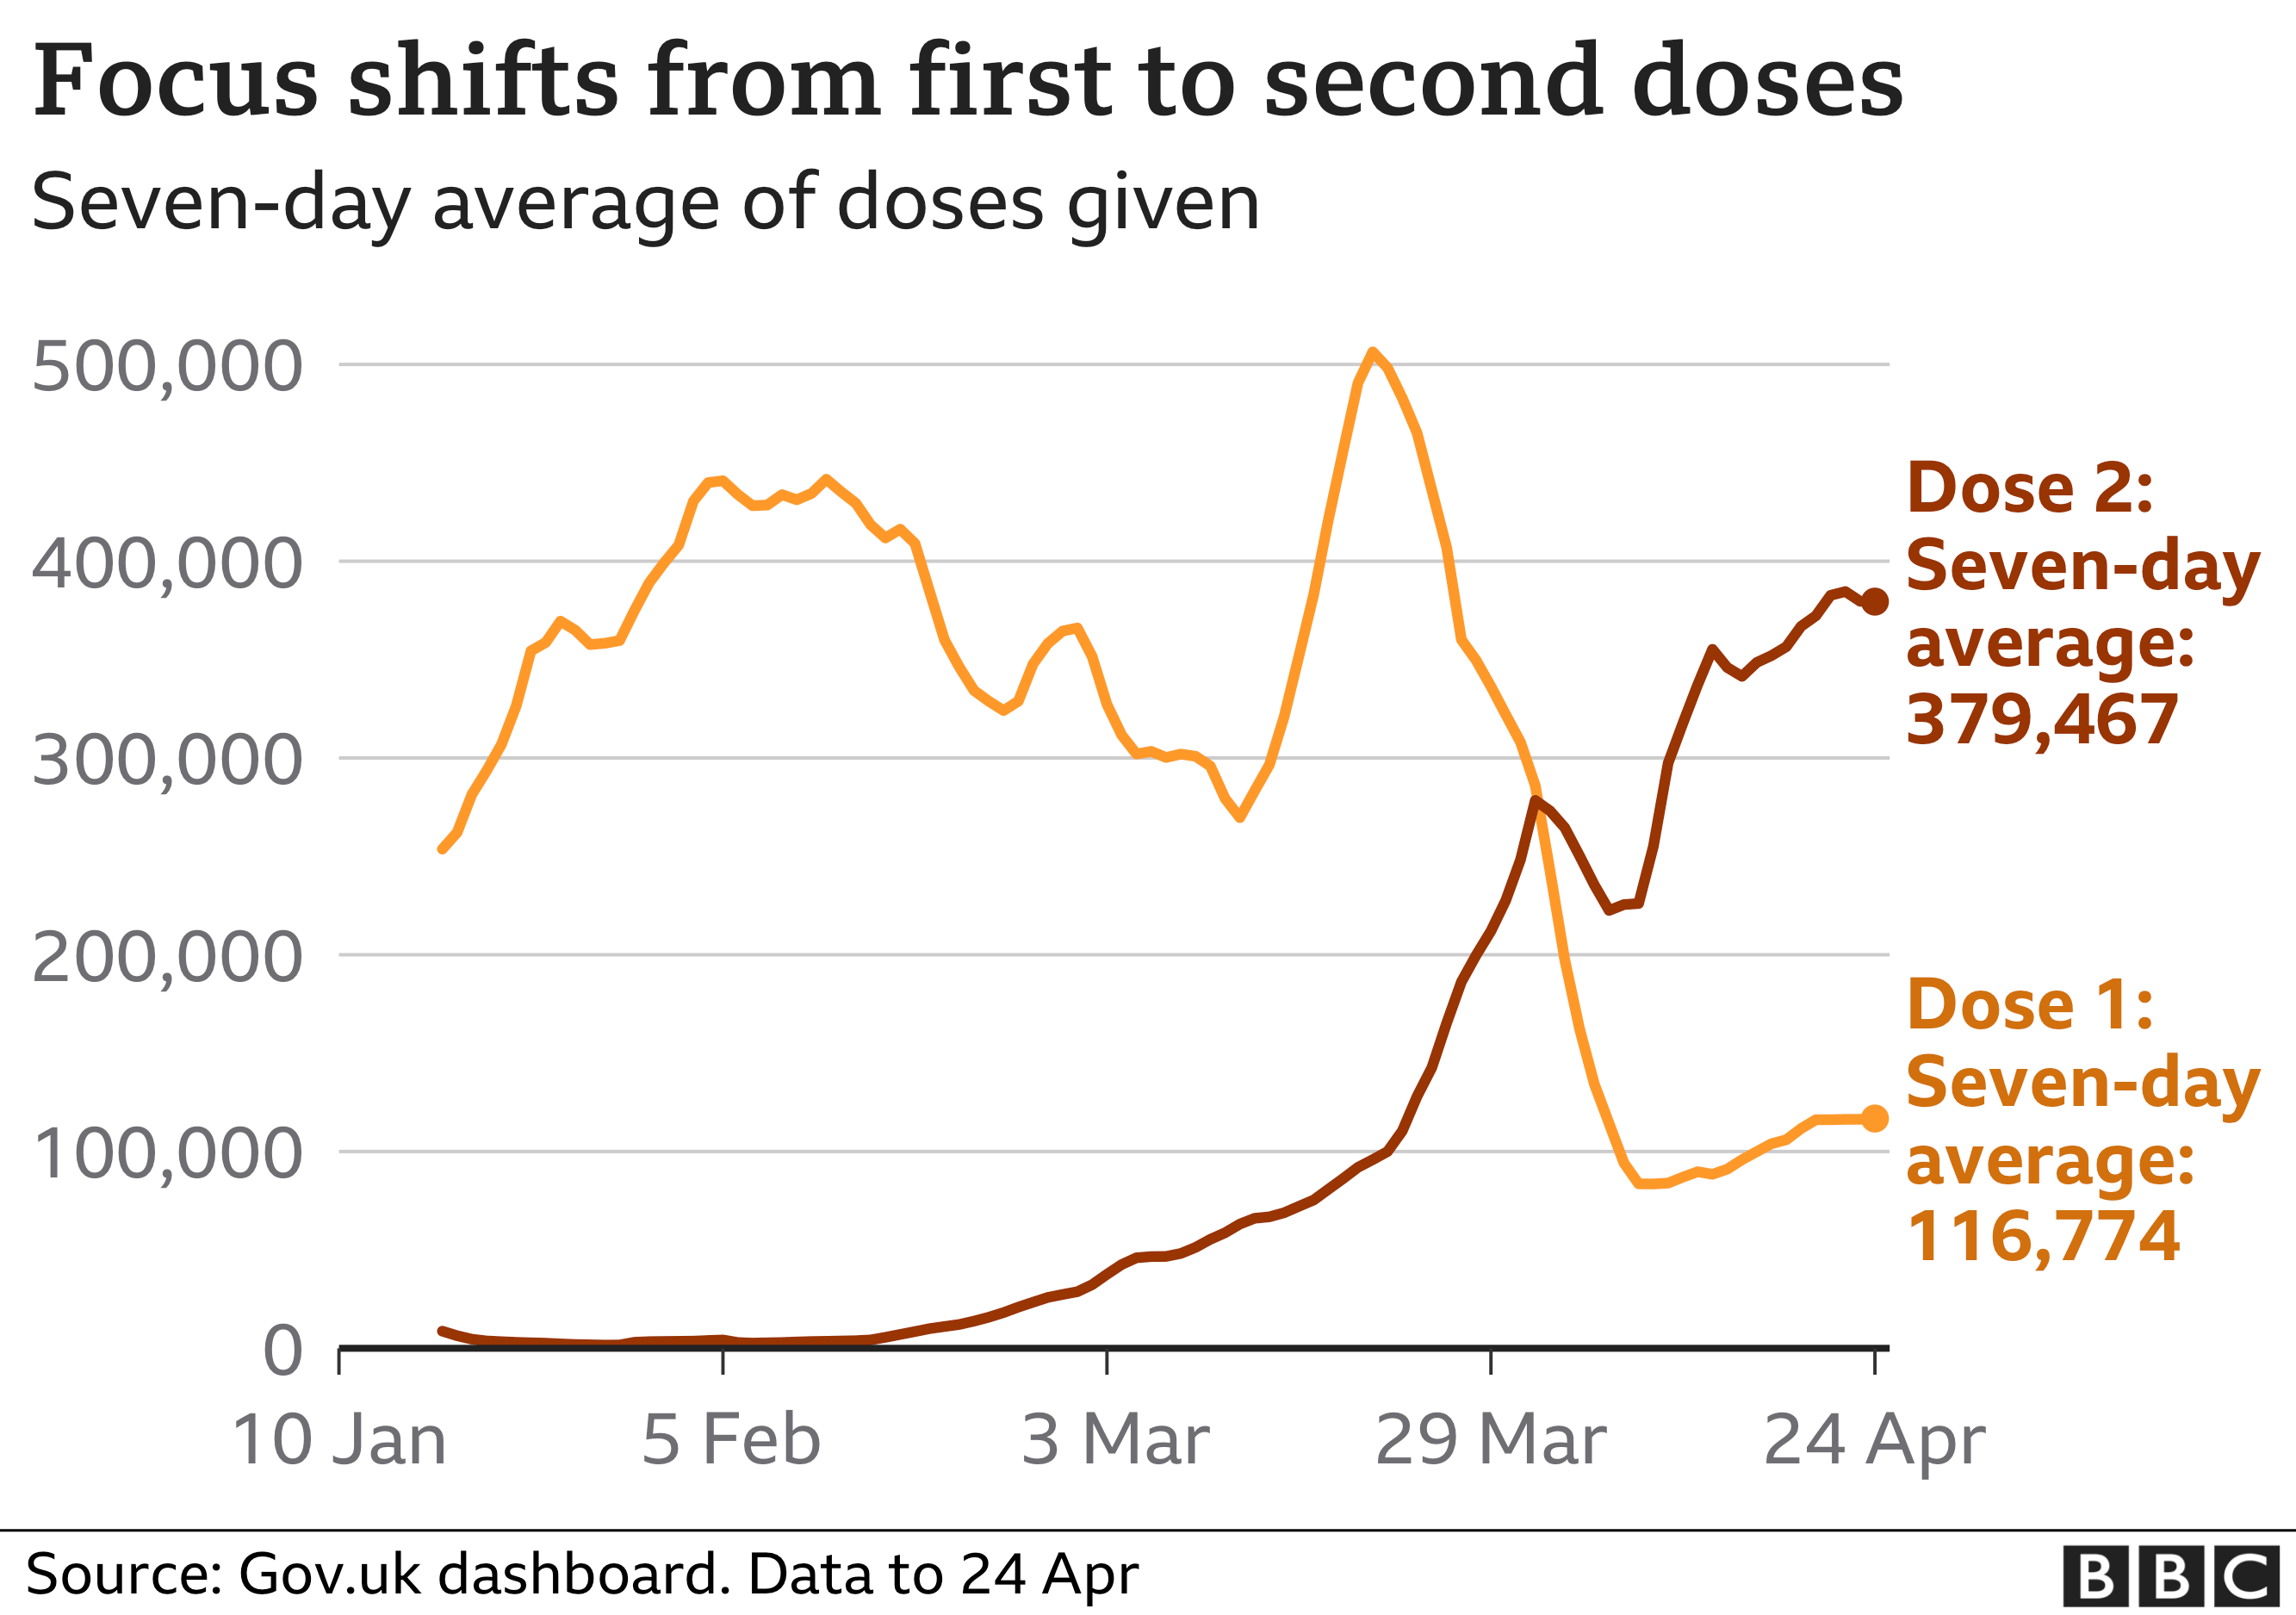 Chart shows daily doses of vaccine with focus now on second dose